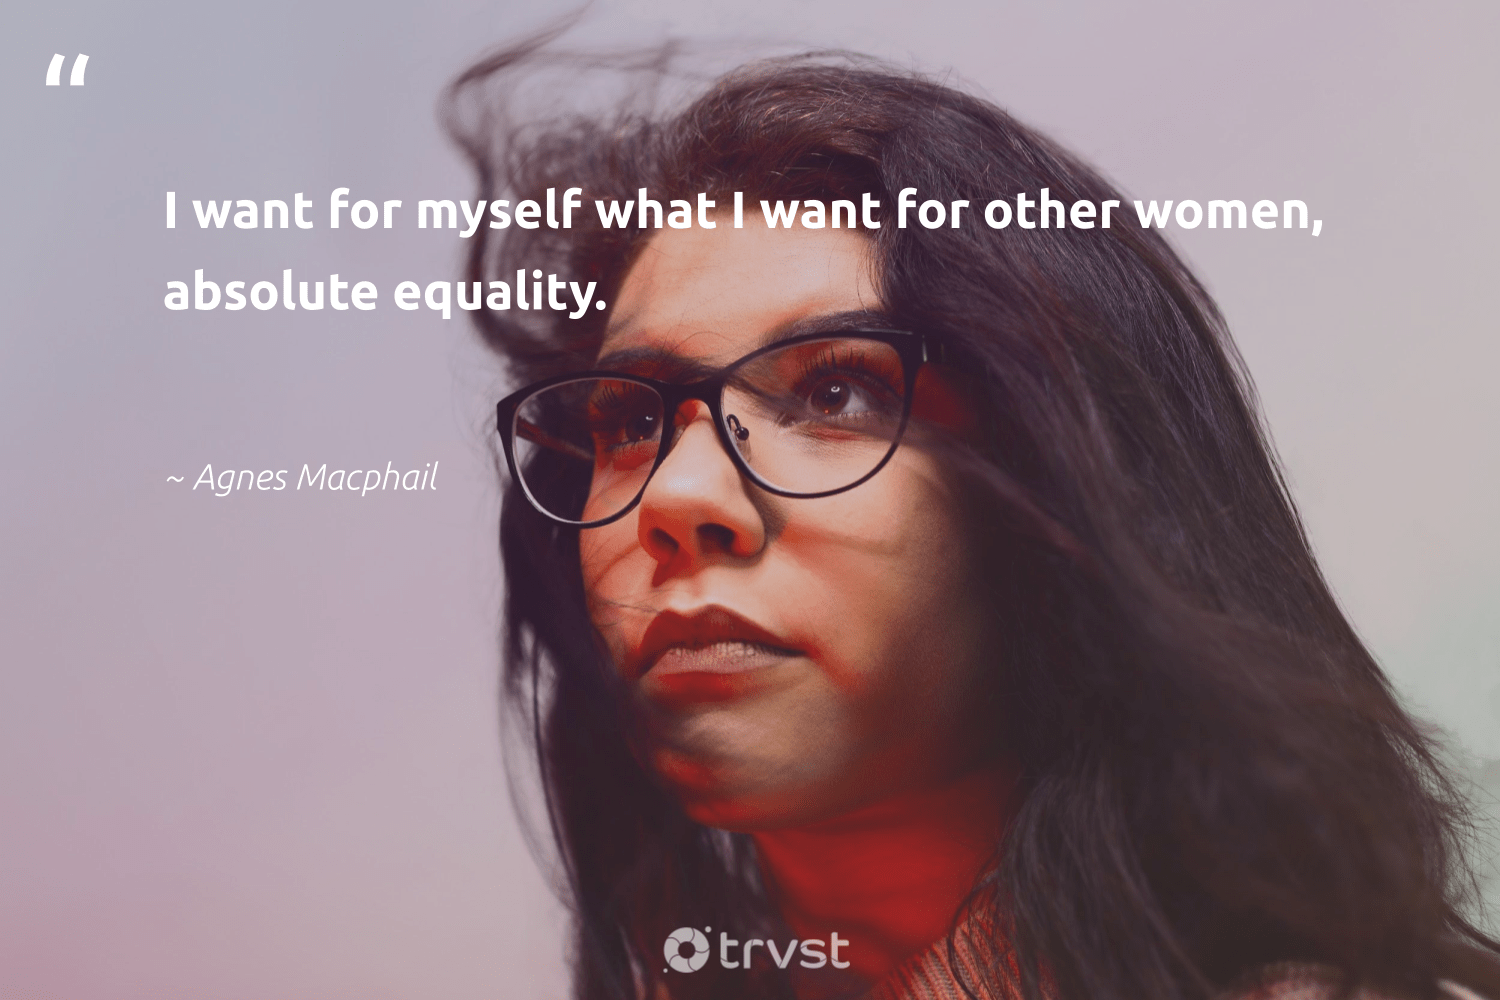 """I want for myself what I want for other women, absolute equality.""  - Agnes Macphail #trvst #quotes #equality #women #equalopportunity #socialgood #giveback #takeaction #empowerment #bethechange #makeadifference #dotherightthing"